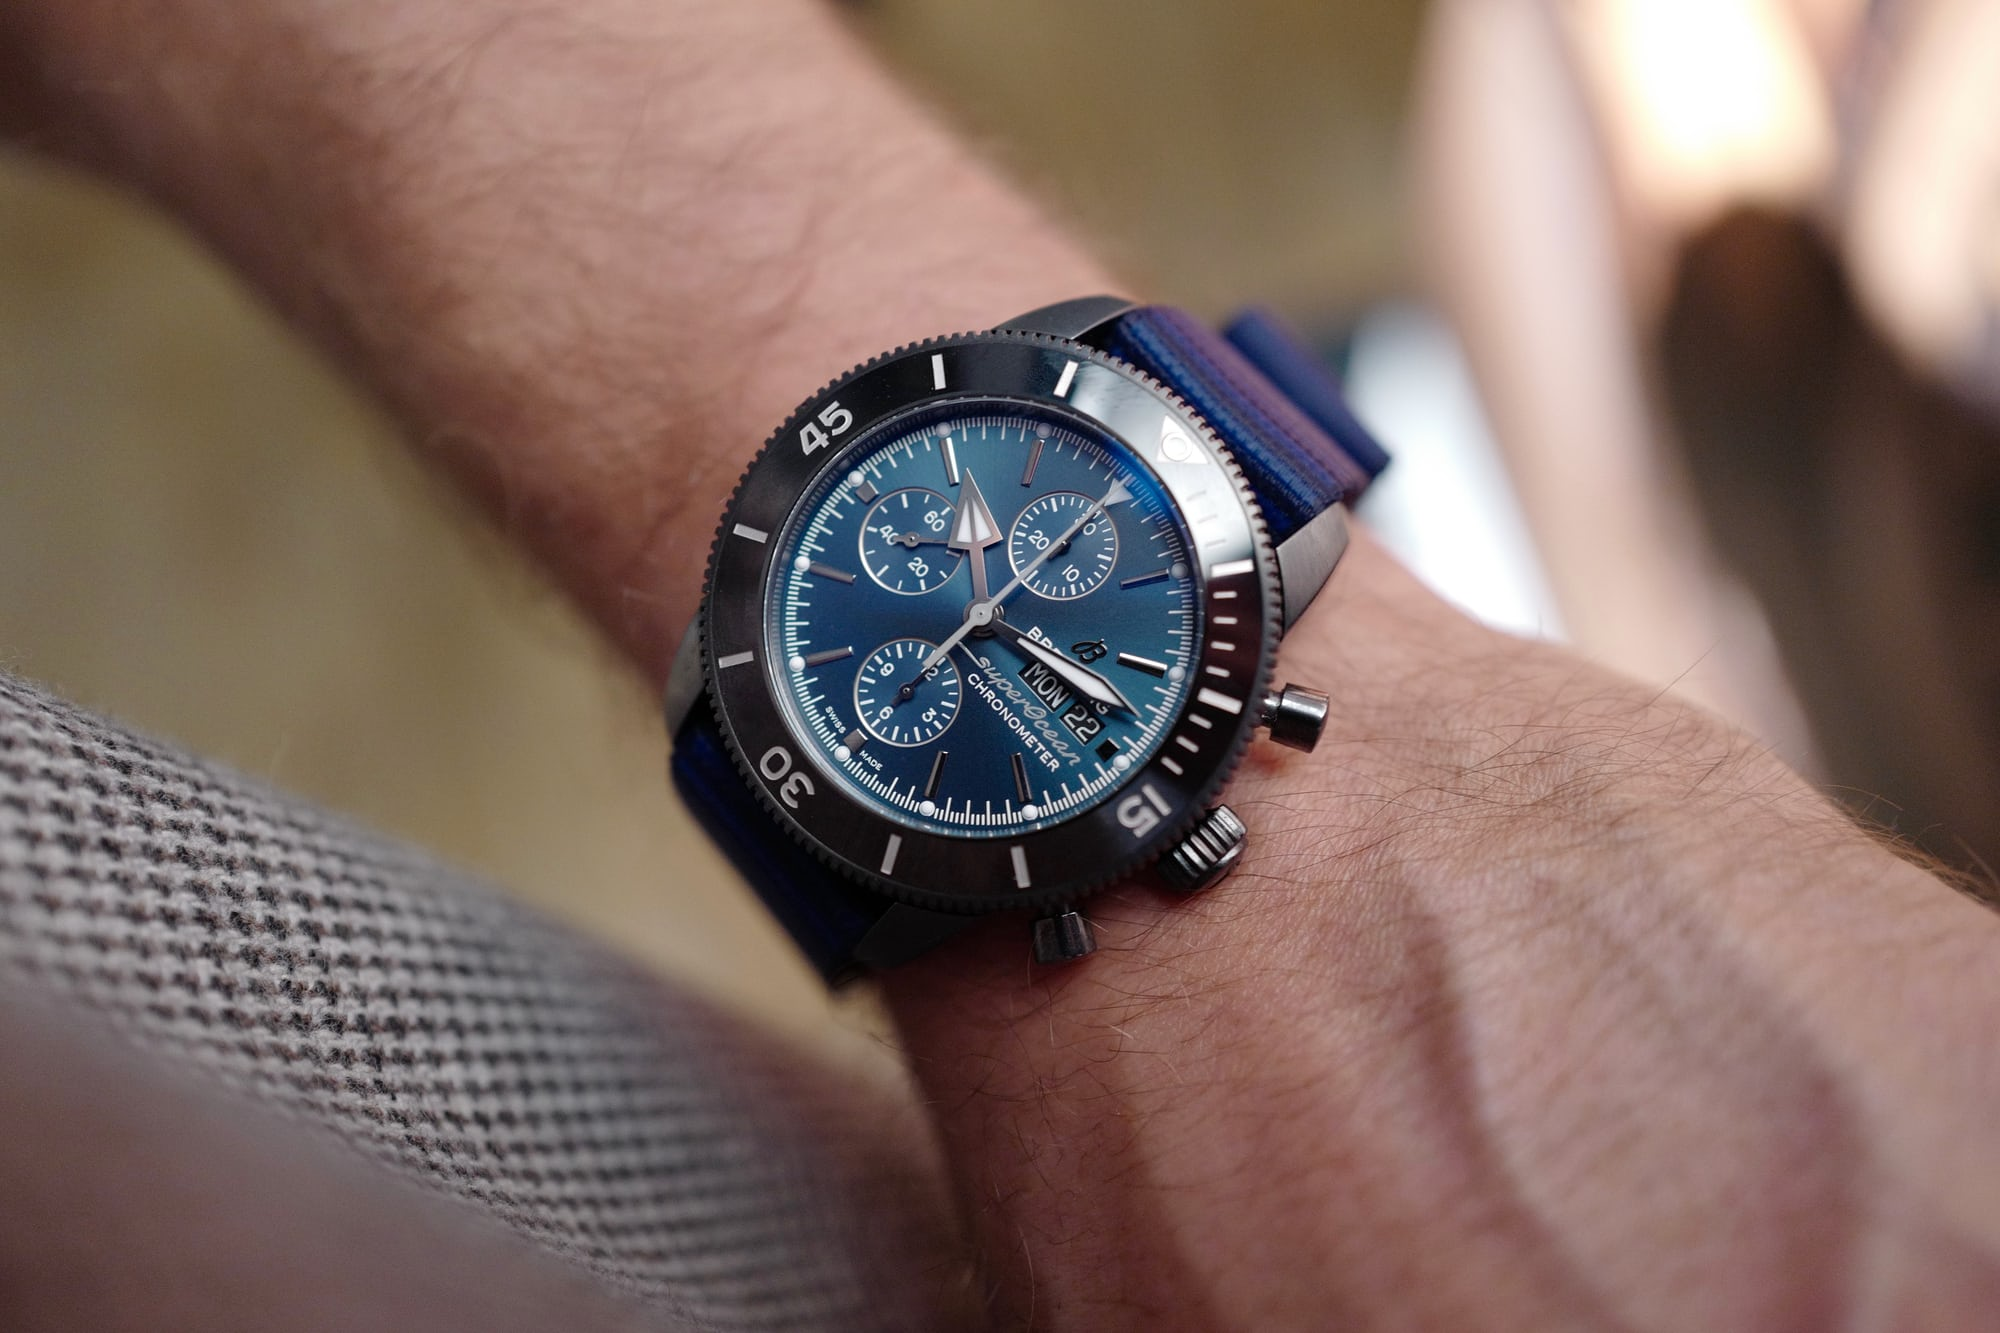 Introducing: The Breitling Superocean Héritage II Chronograph 44 Outerknown L1090051